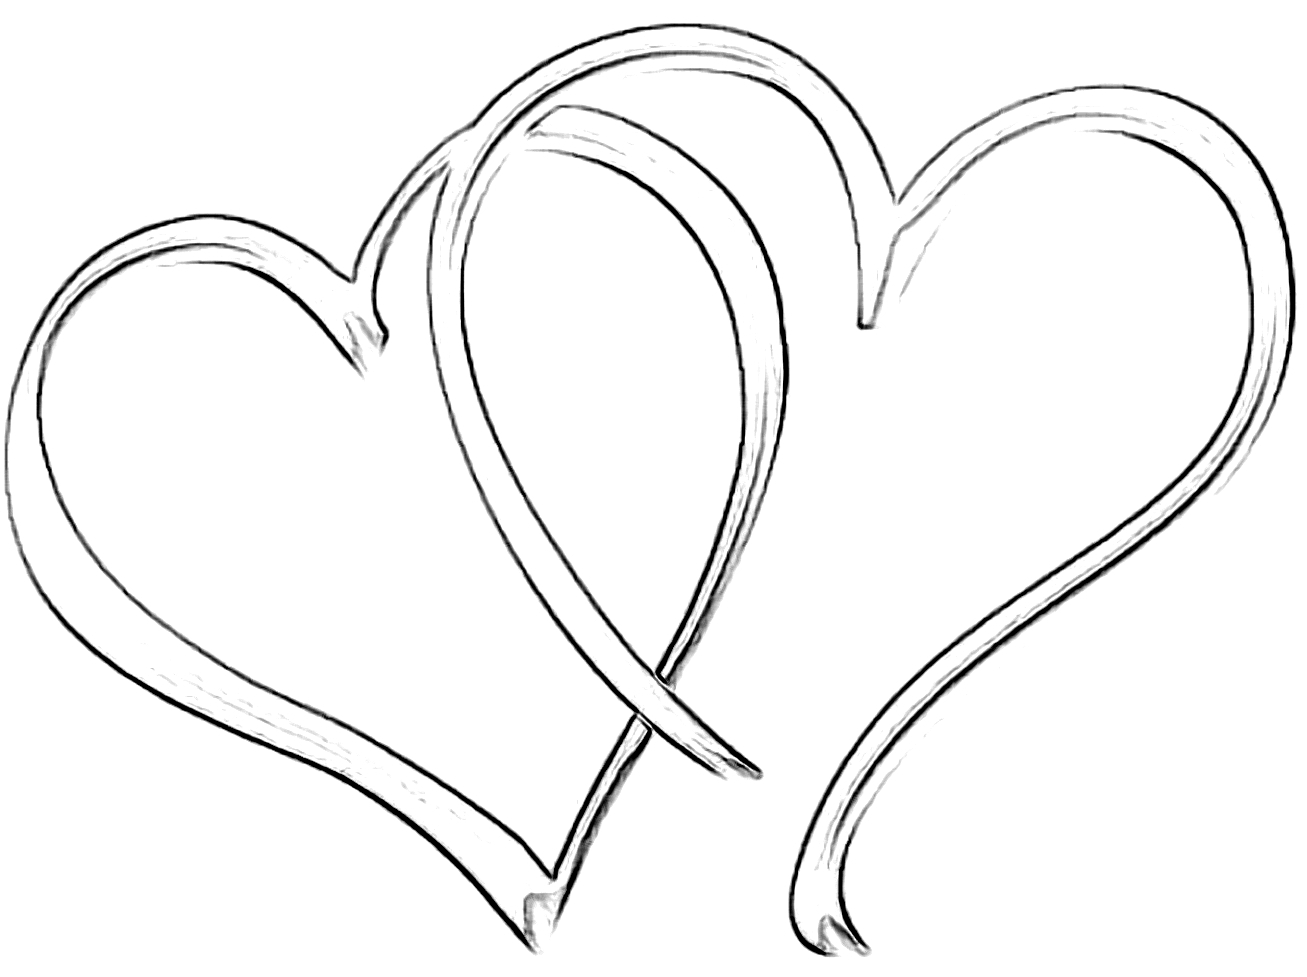 1307x977 Heart Shape Images Drawing Heart Shape Design Made With Hand